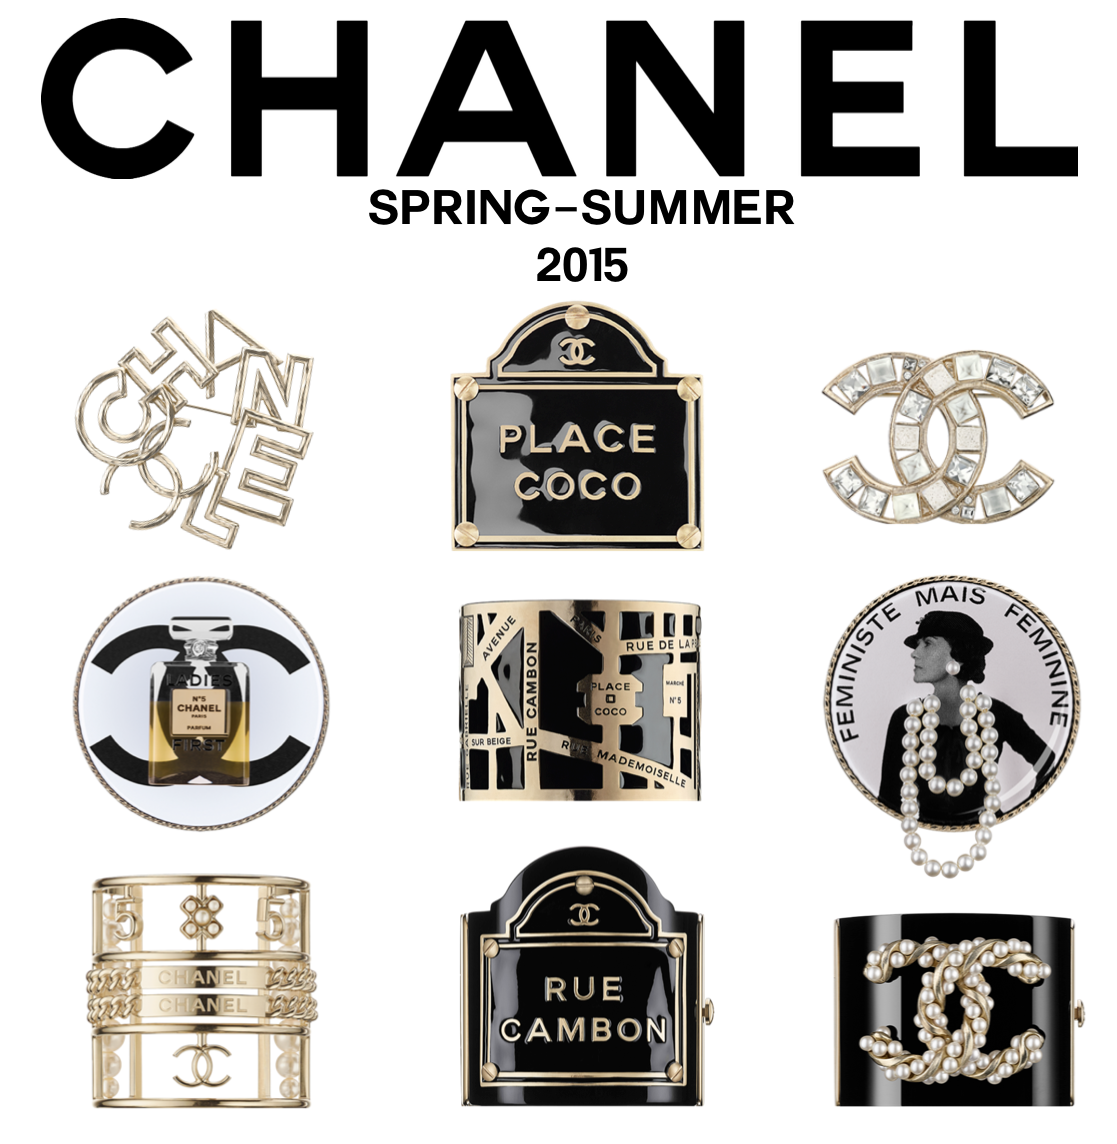 LOOKandLOVEwithLOLO: Chanel Spring-Summer 2015 Accessories